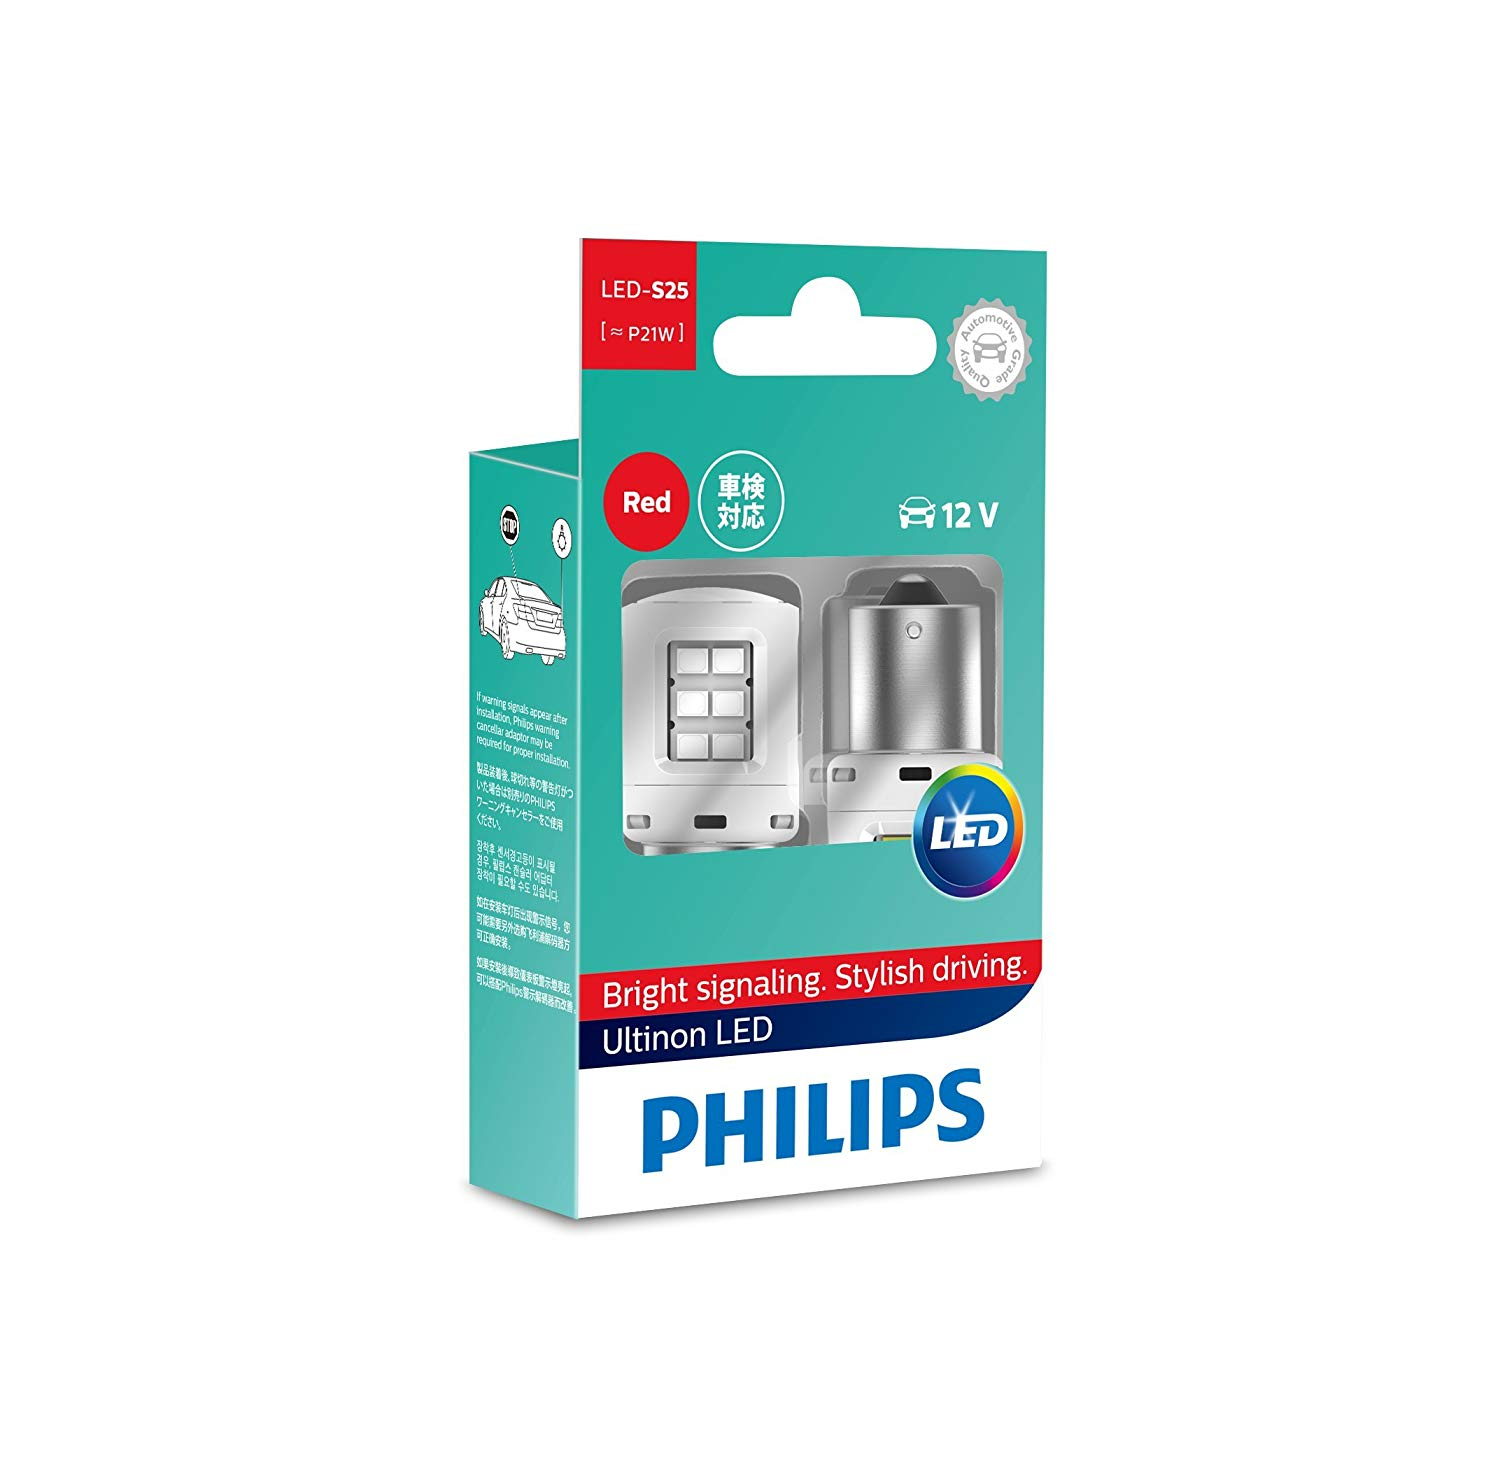 PHILIPS Ultinon LED Miniature Bulb S25 (生産終了)